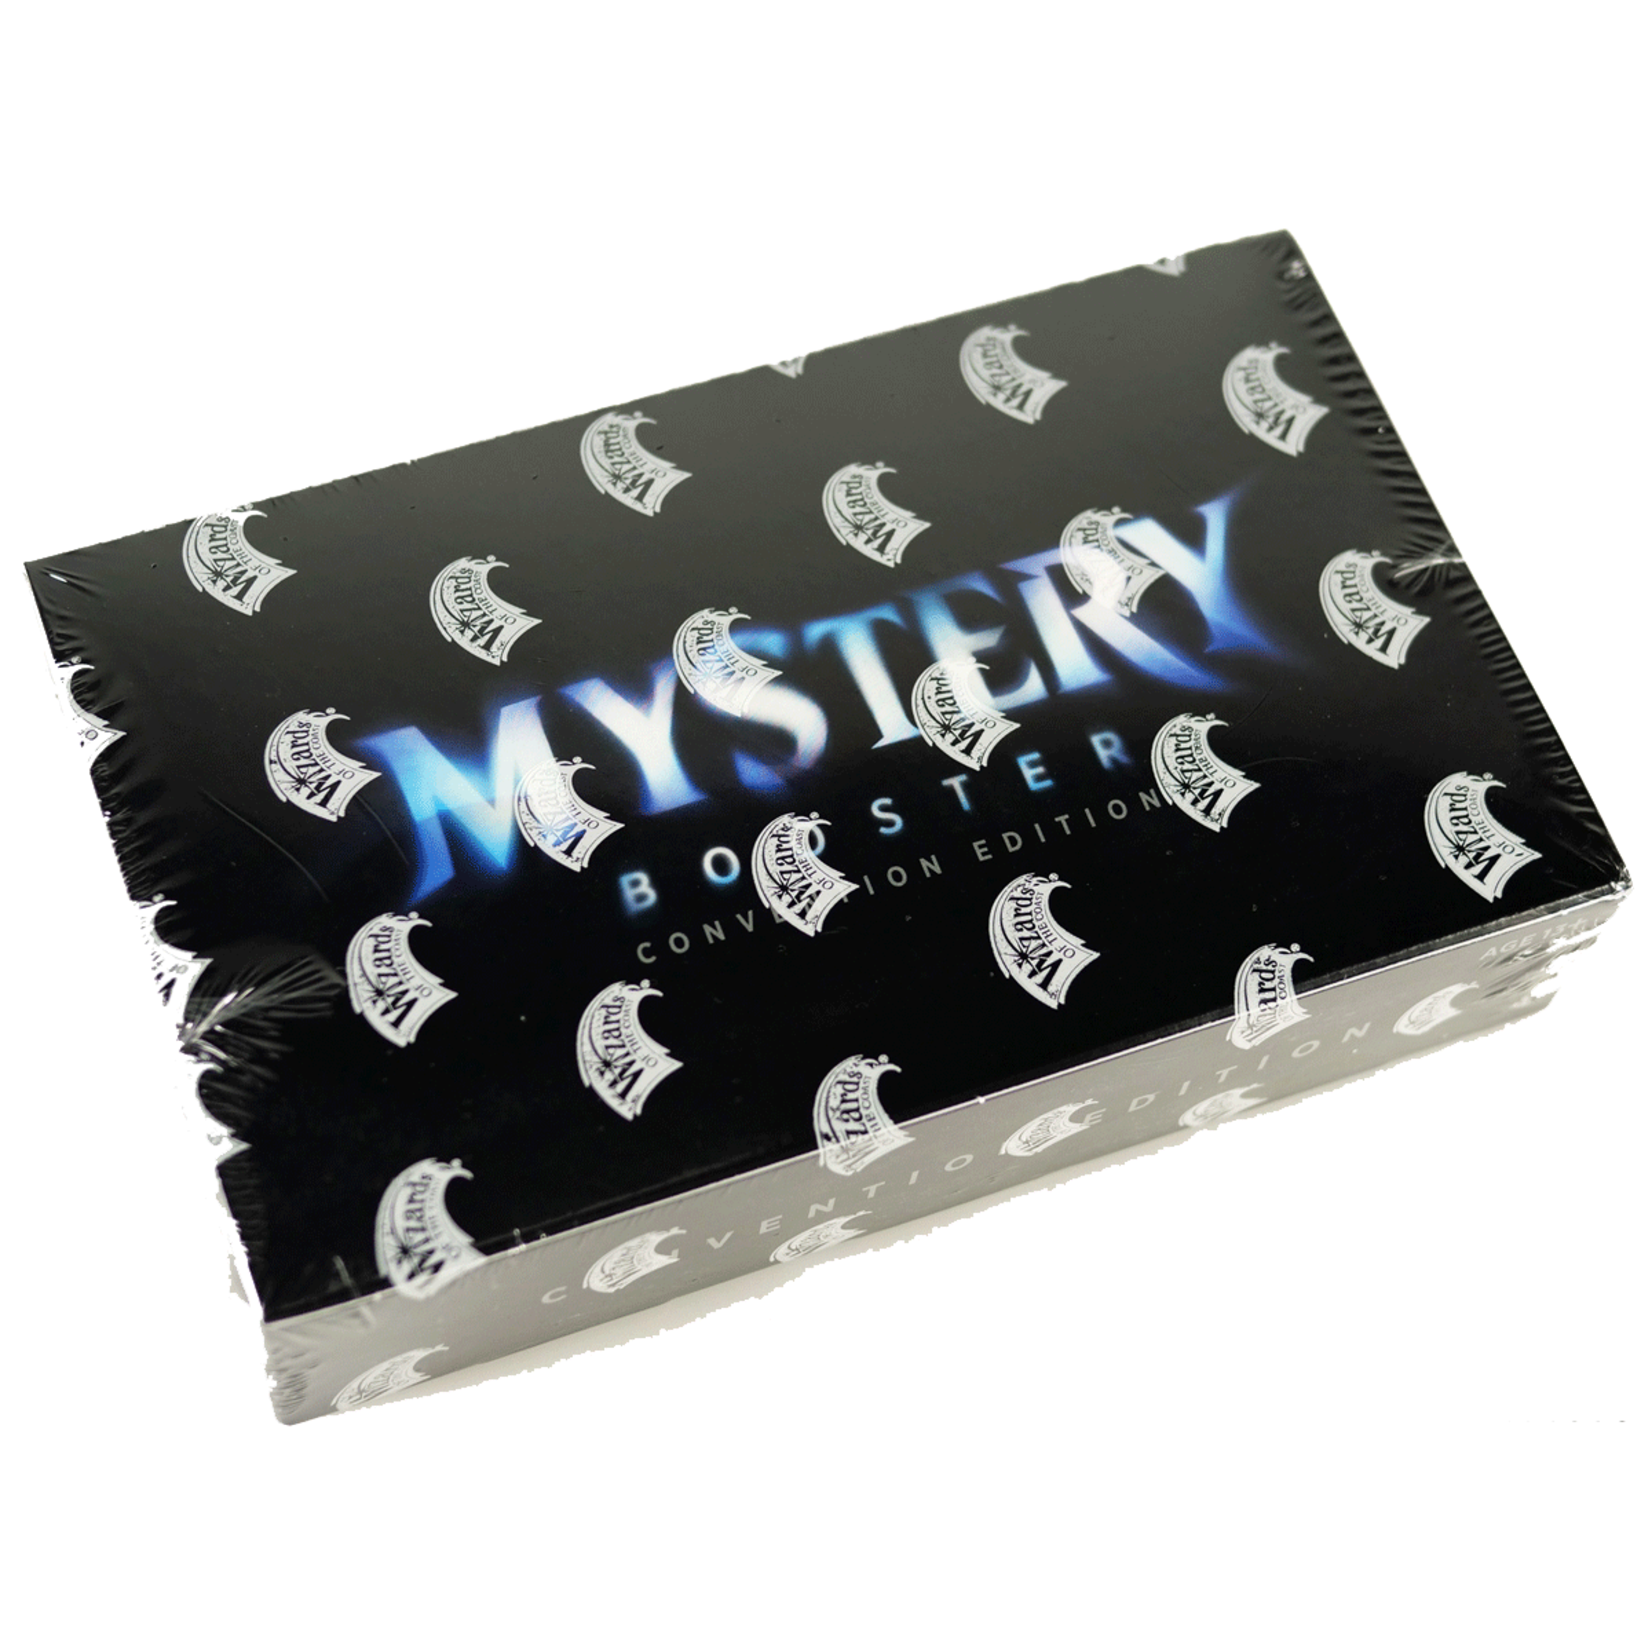 Wizards of the Coast Mystery Booster Box Convention Edition (2021)